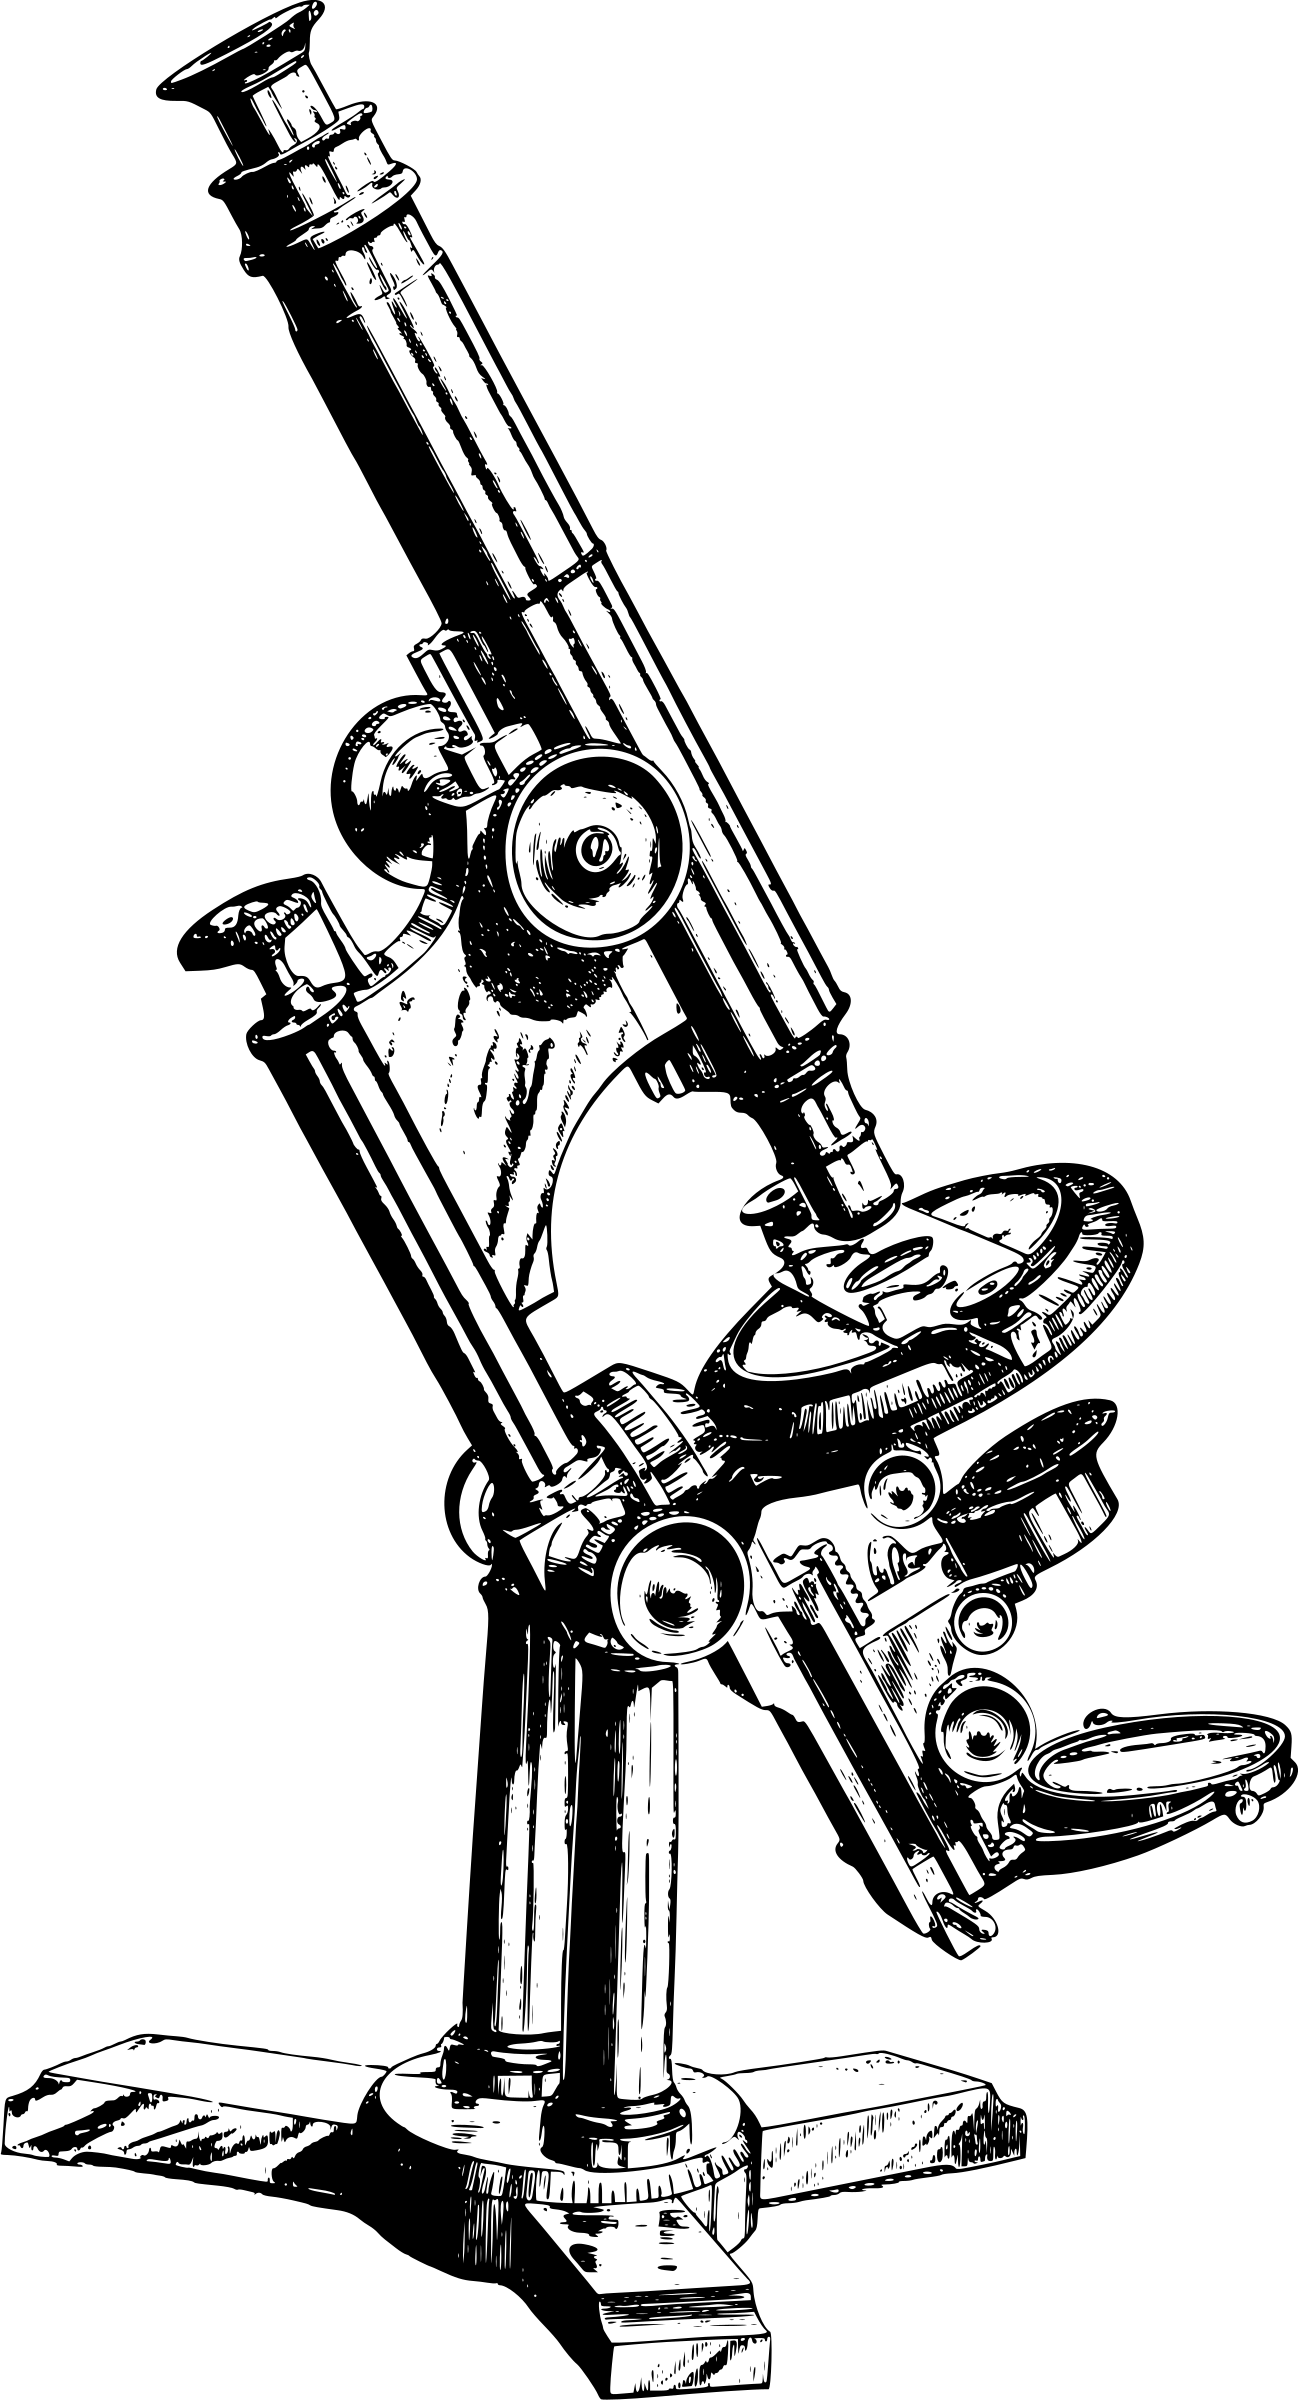 Drawing compound binocular. Microscope at getdrawings com